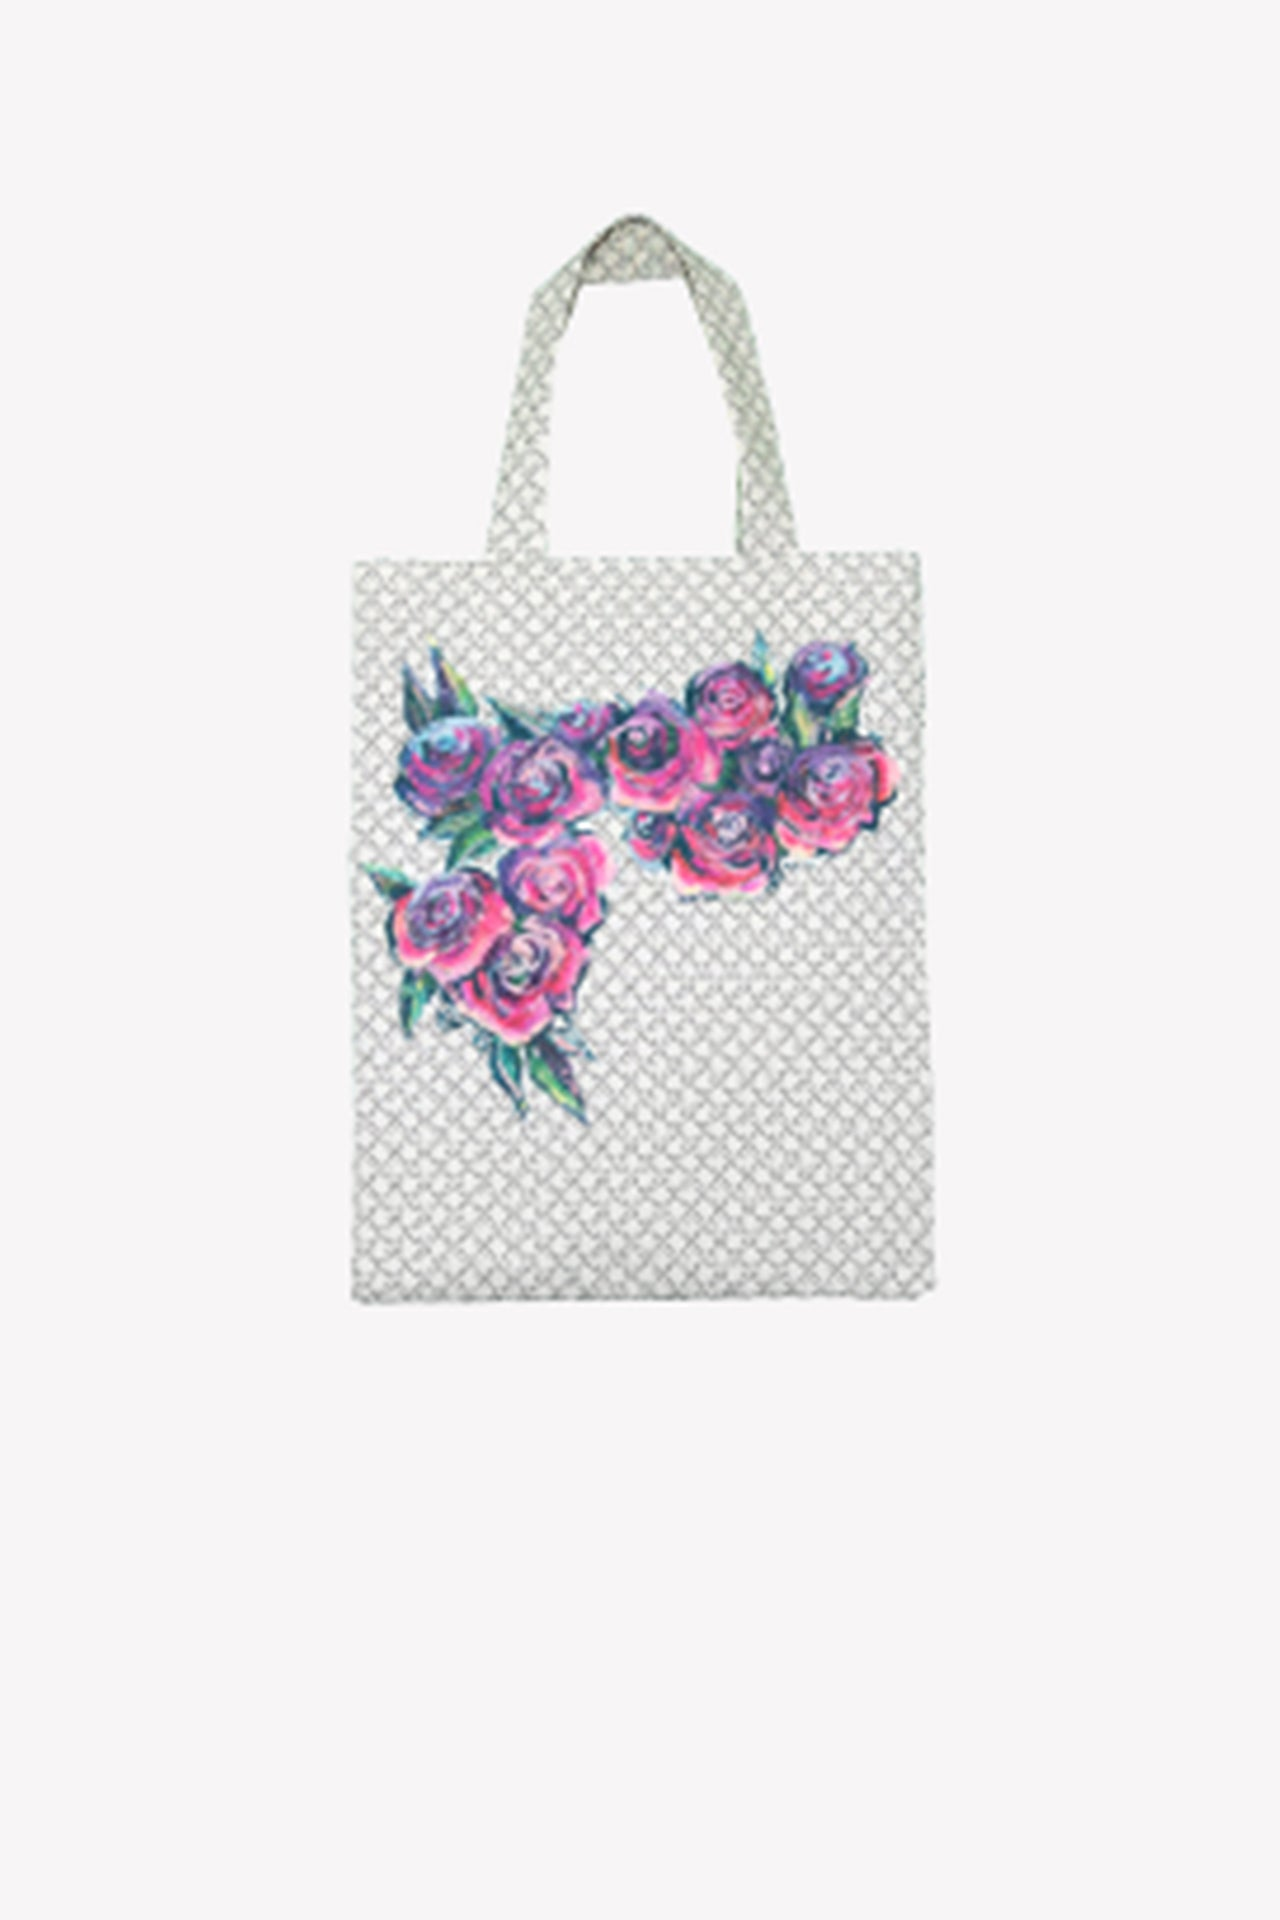 Hand painted rose tote bag